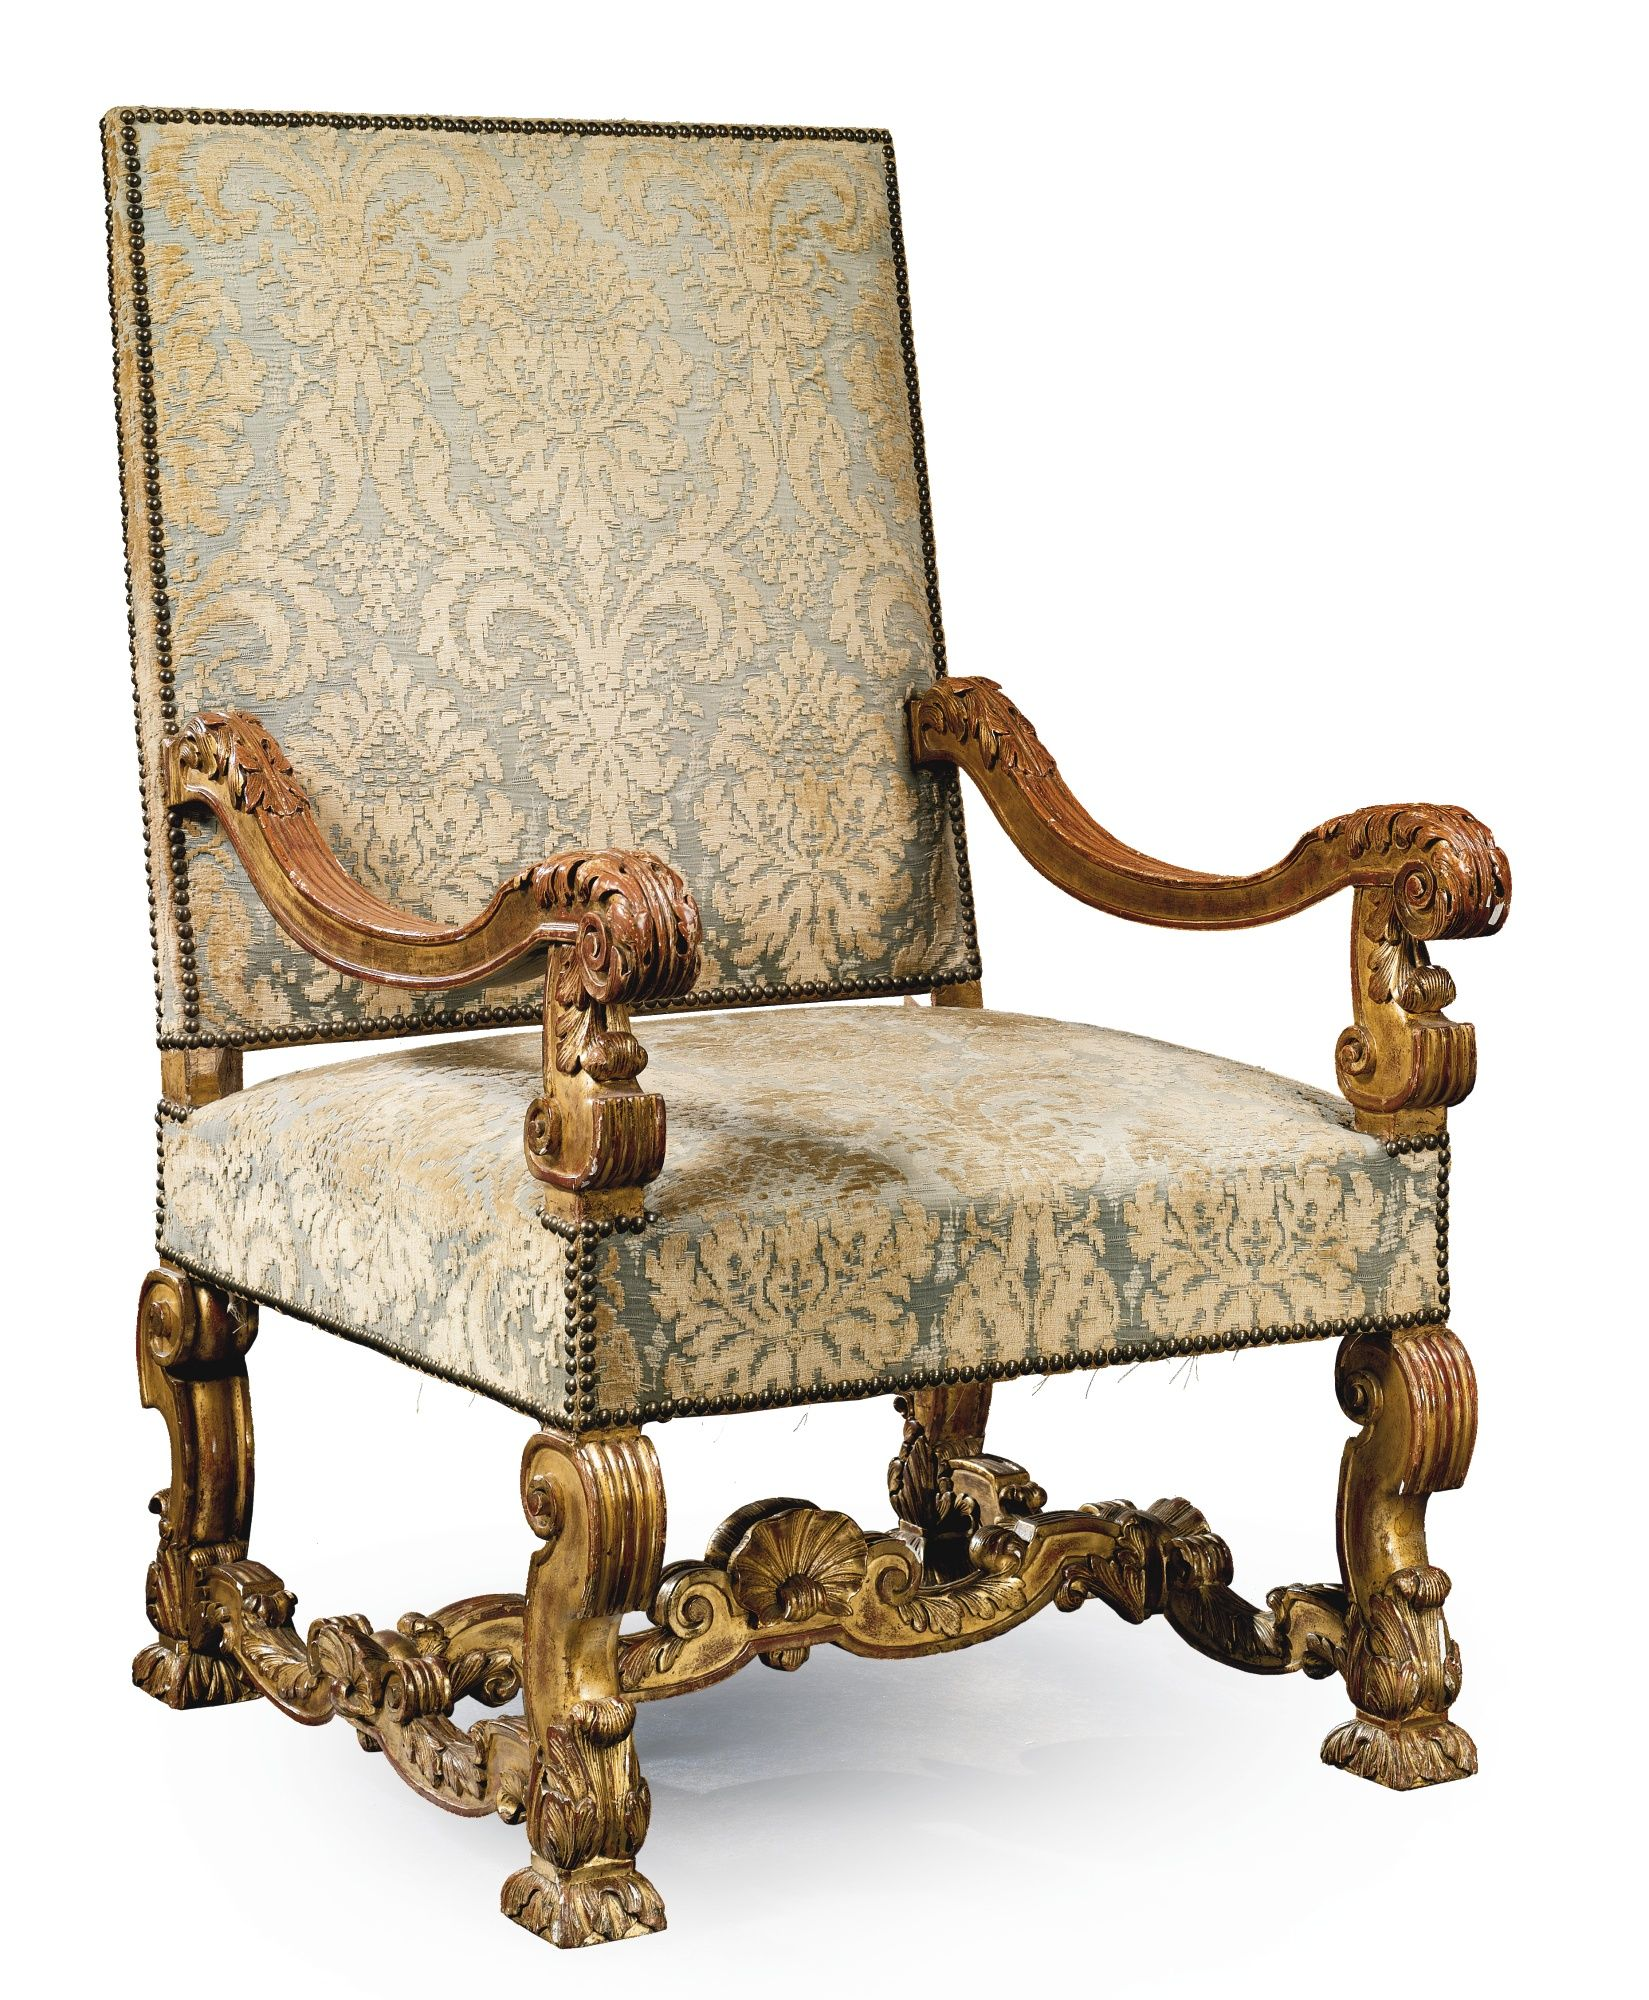 Styles Fauteuils A Louis Xiv Style Carved Giltwood Fauteuil Br Late 19th Early 20th